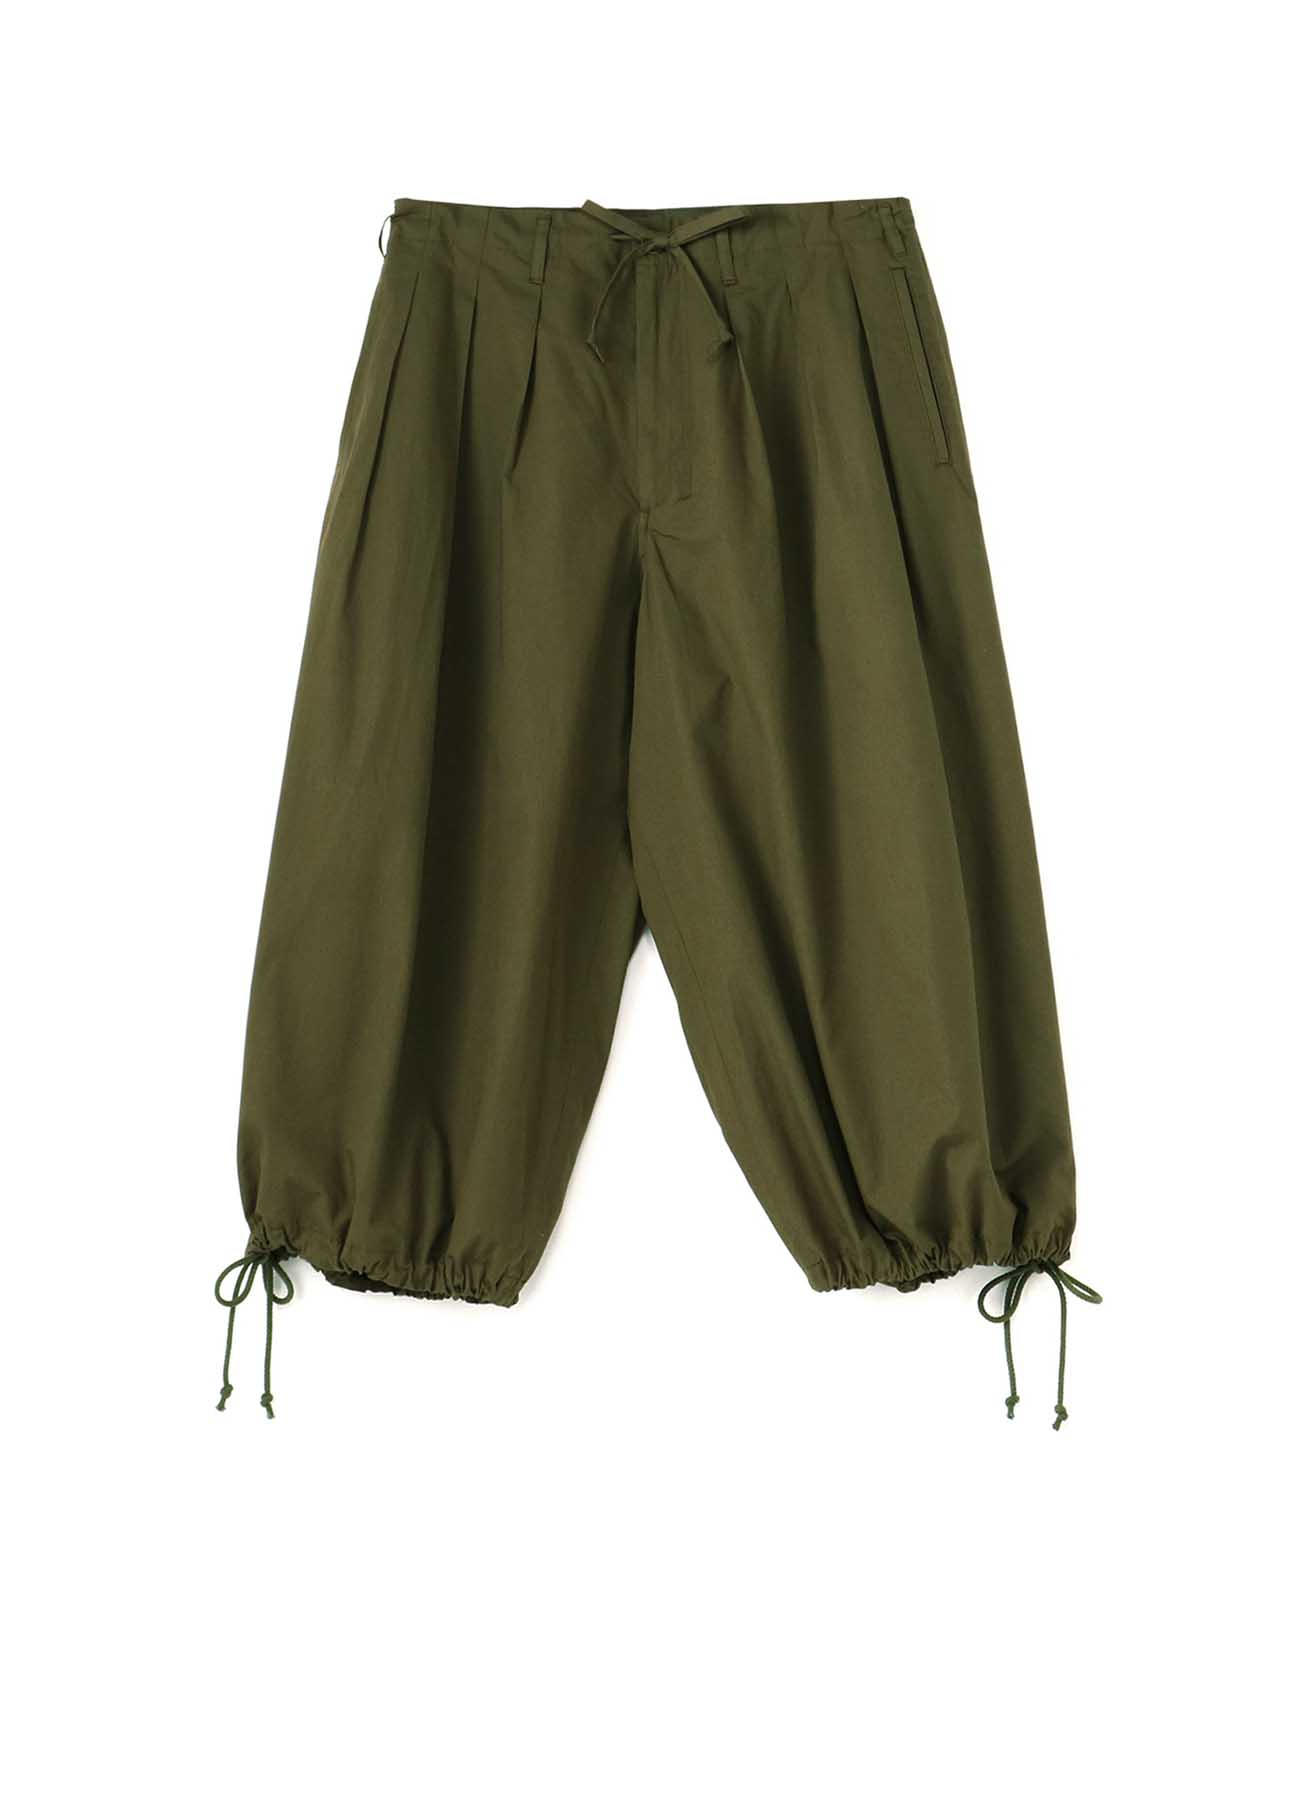 40/2 Cotton Broad Balloon Pants